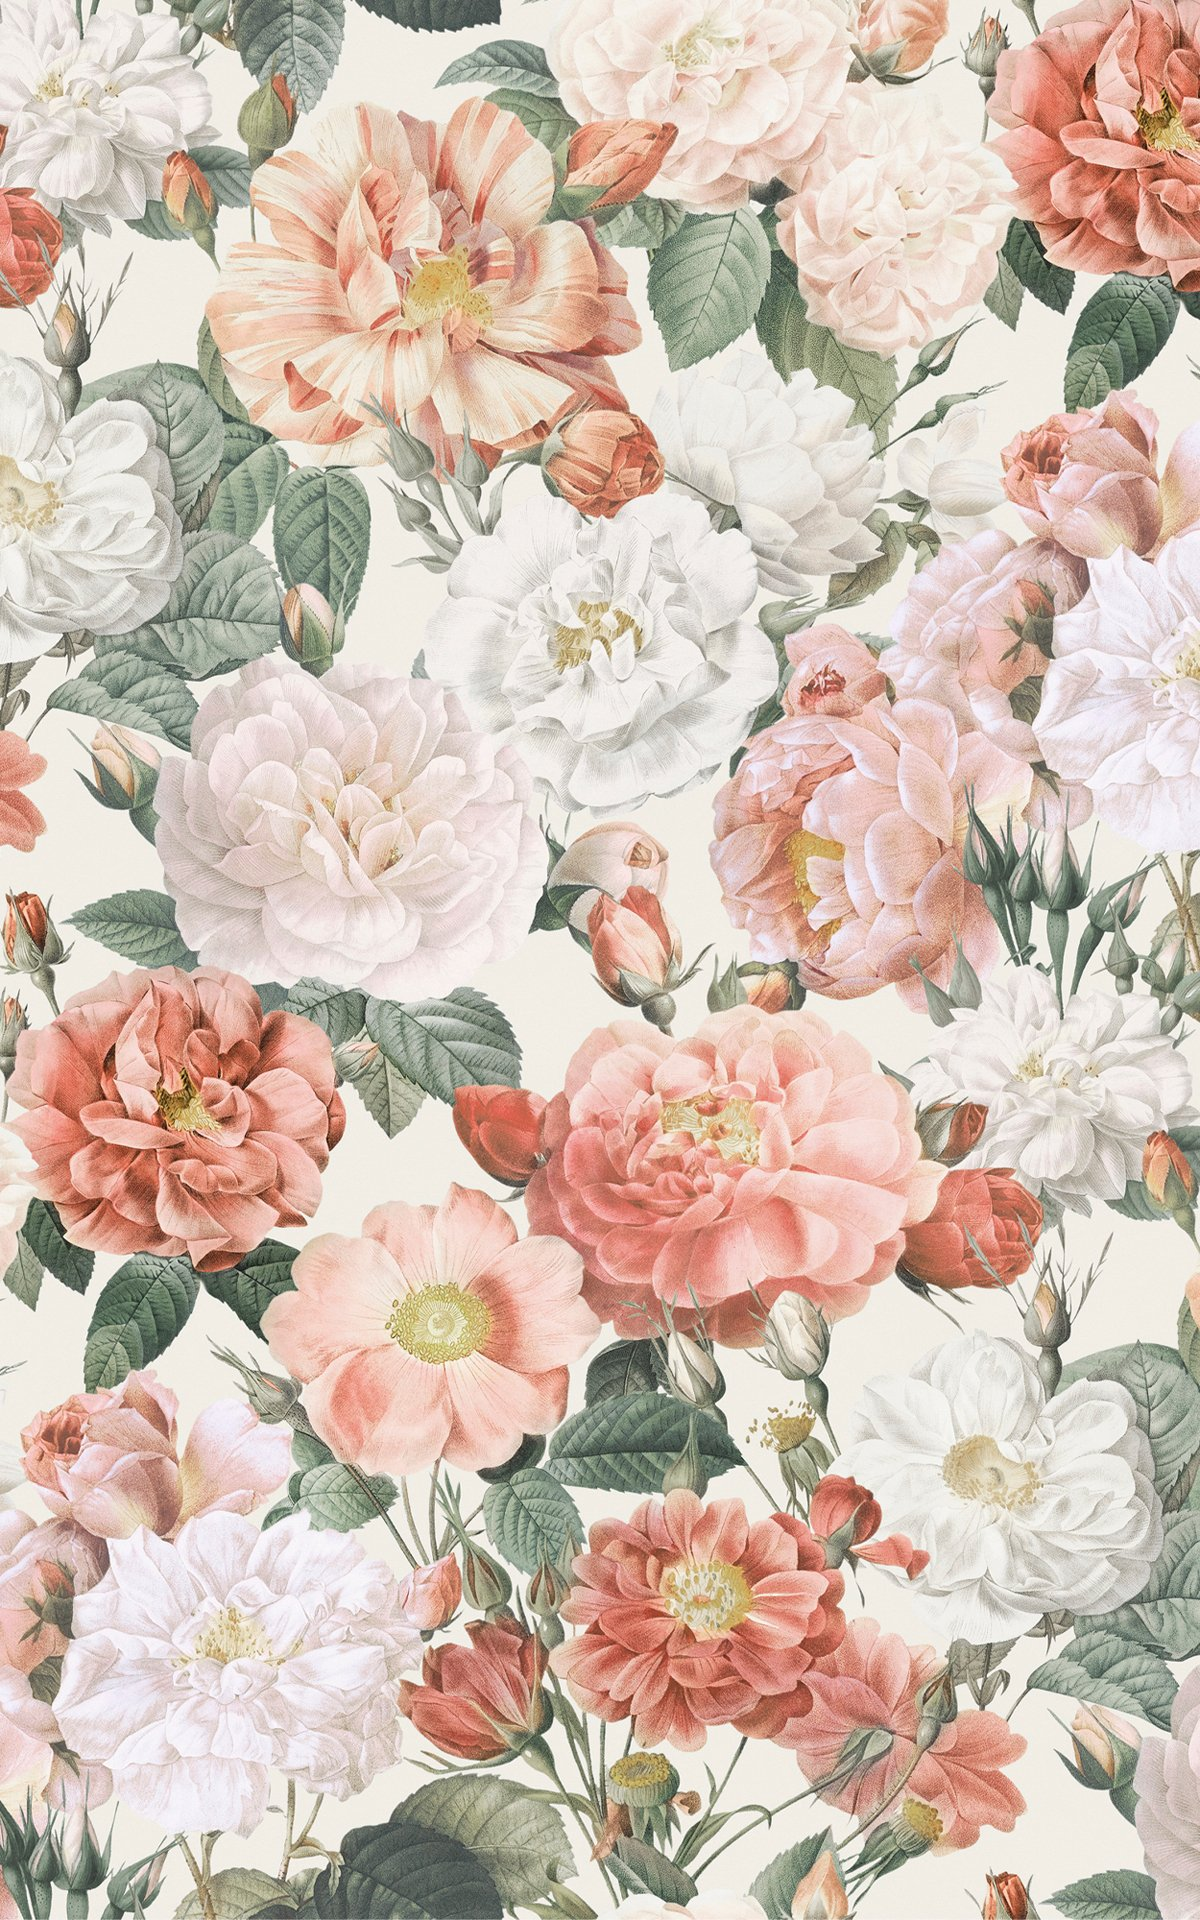 Pink & Red Roses Vintage Floral Wallpaper Mural Product Image